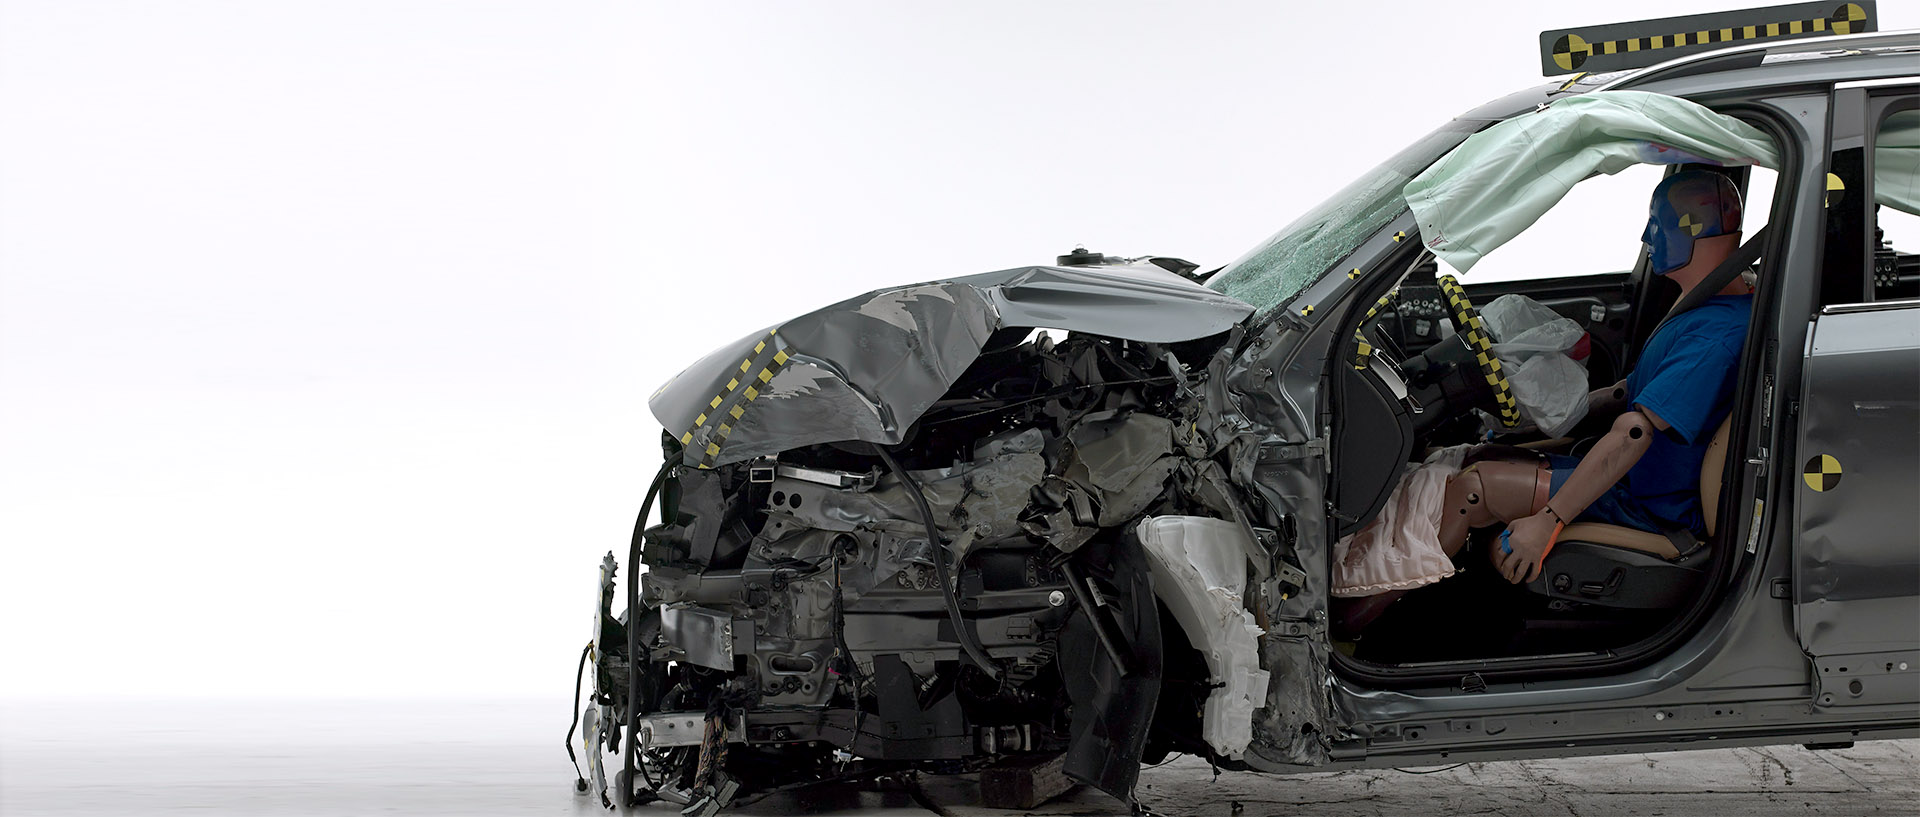 New Nhtsa Car Safety Ratings To Factor Crash Avoidance